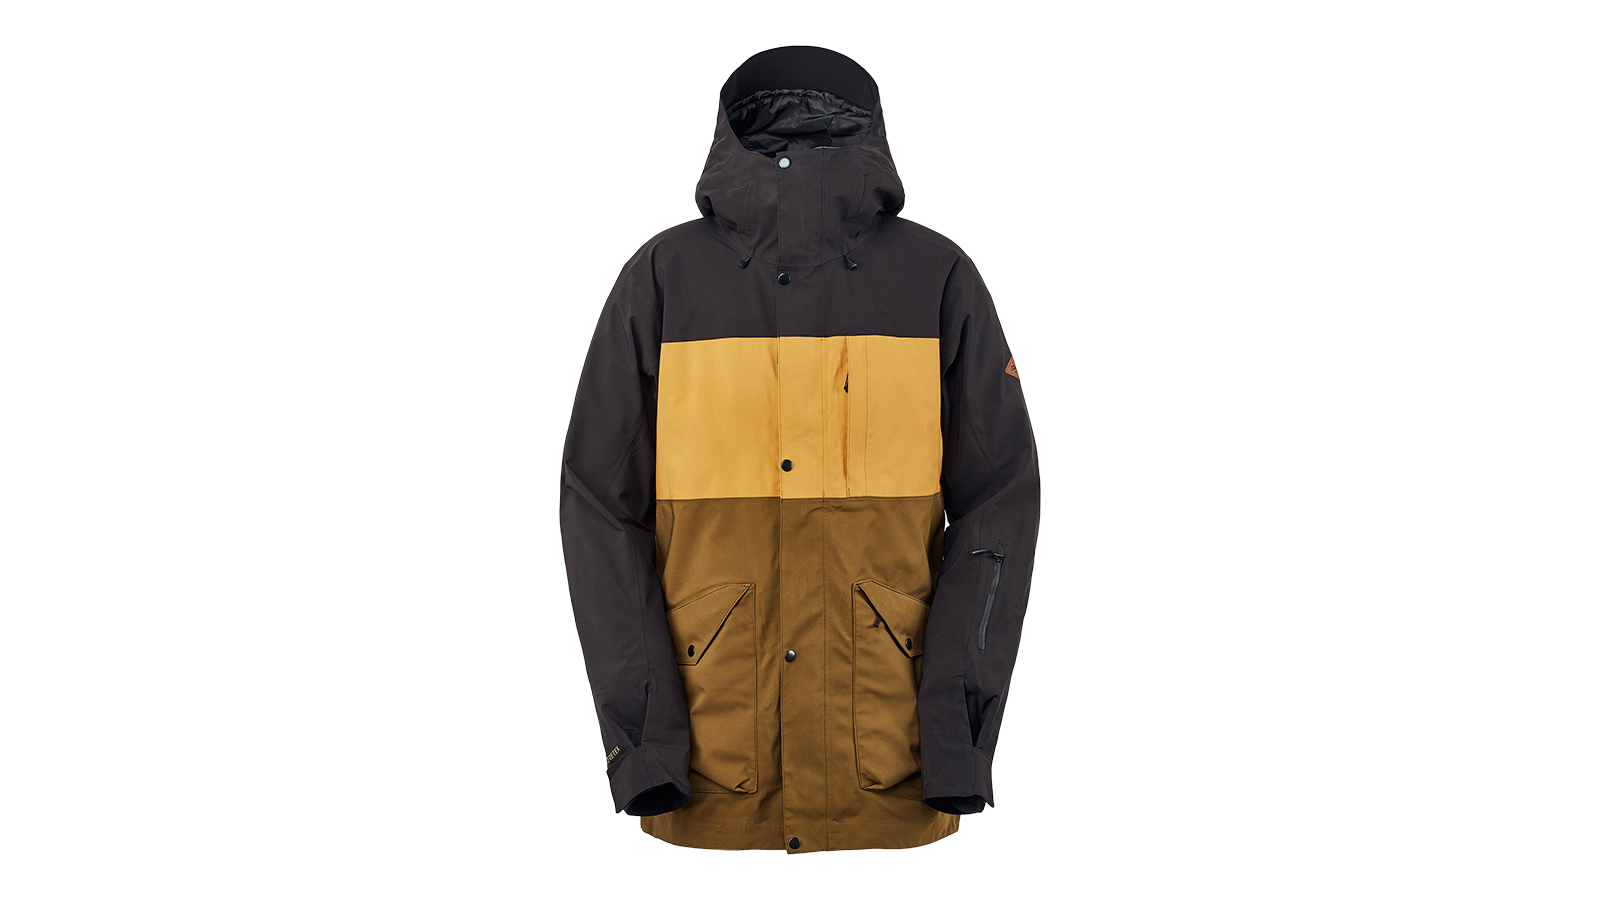 Dakine FW20/21 Men's Outerwear Preview